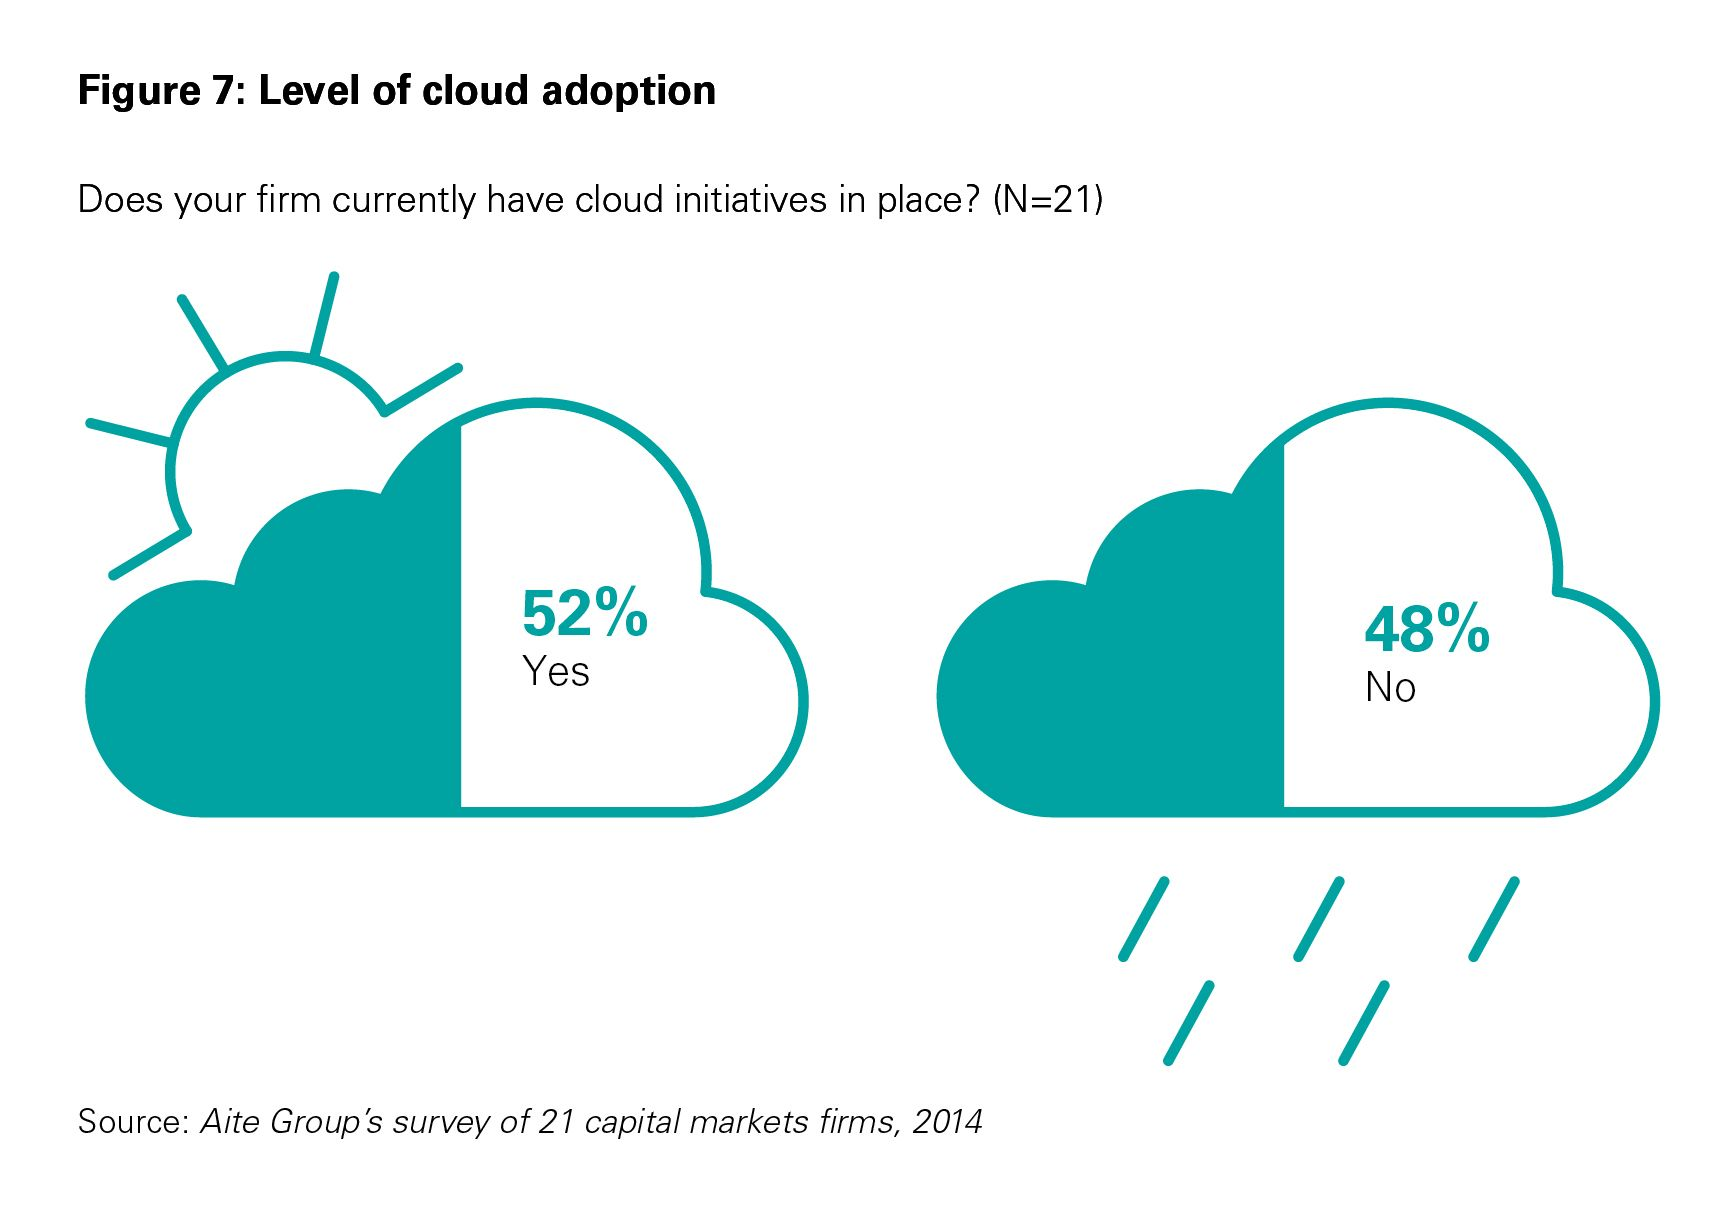 Level of cloud adoption